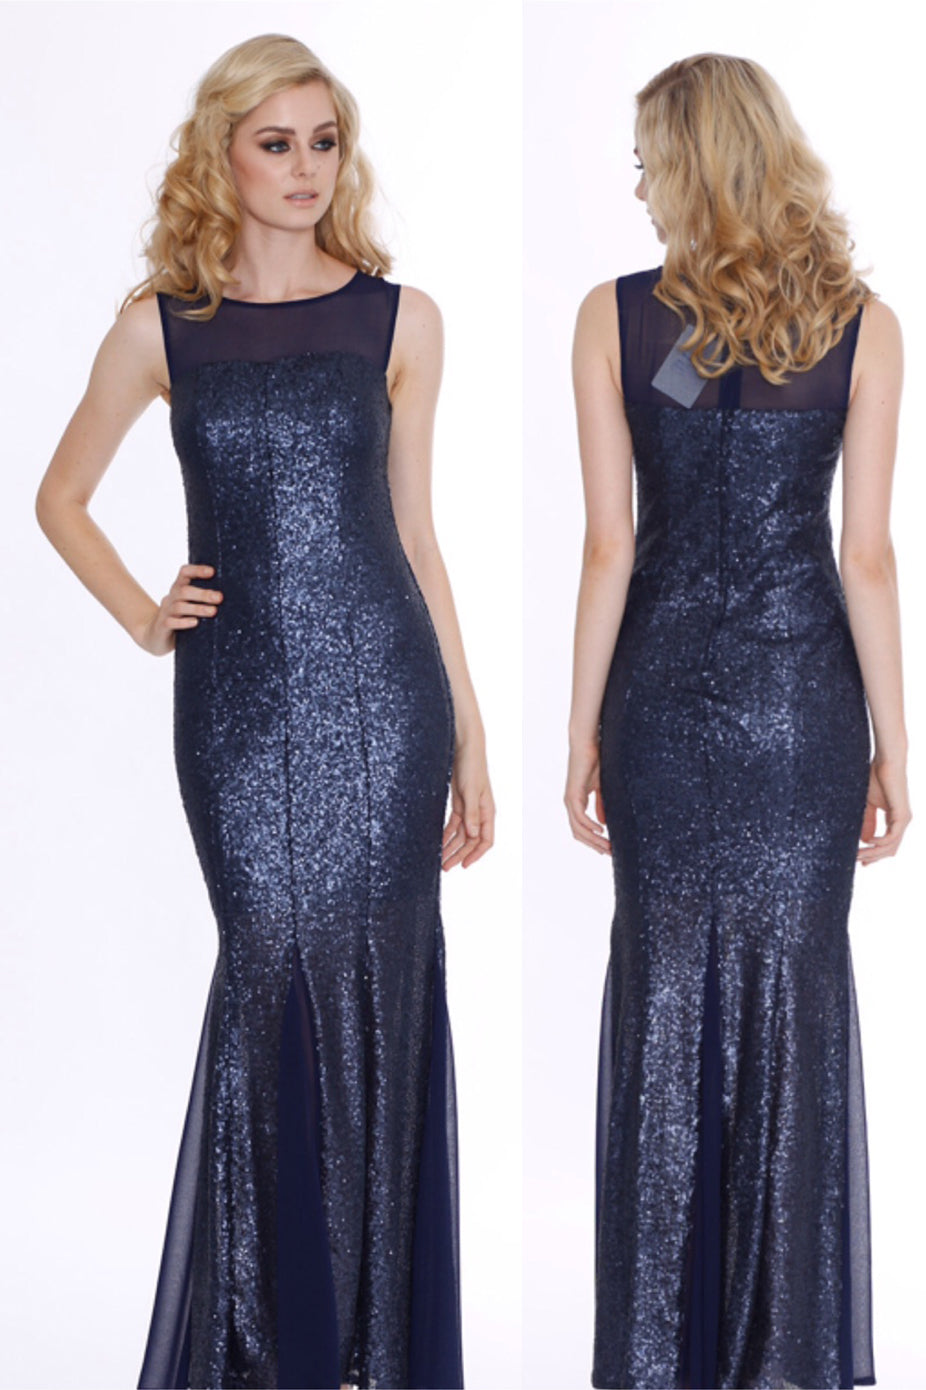 SHINE ON GOWN by Romance the label